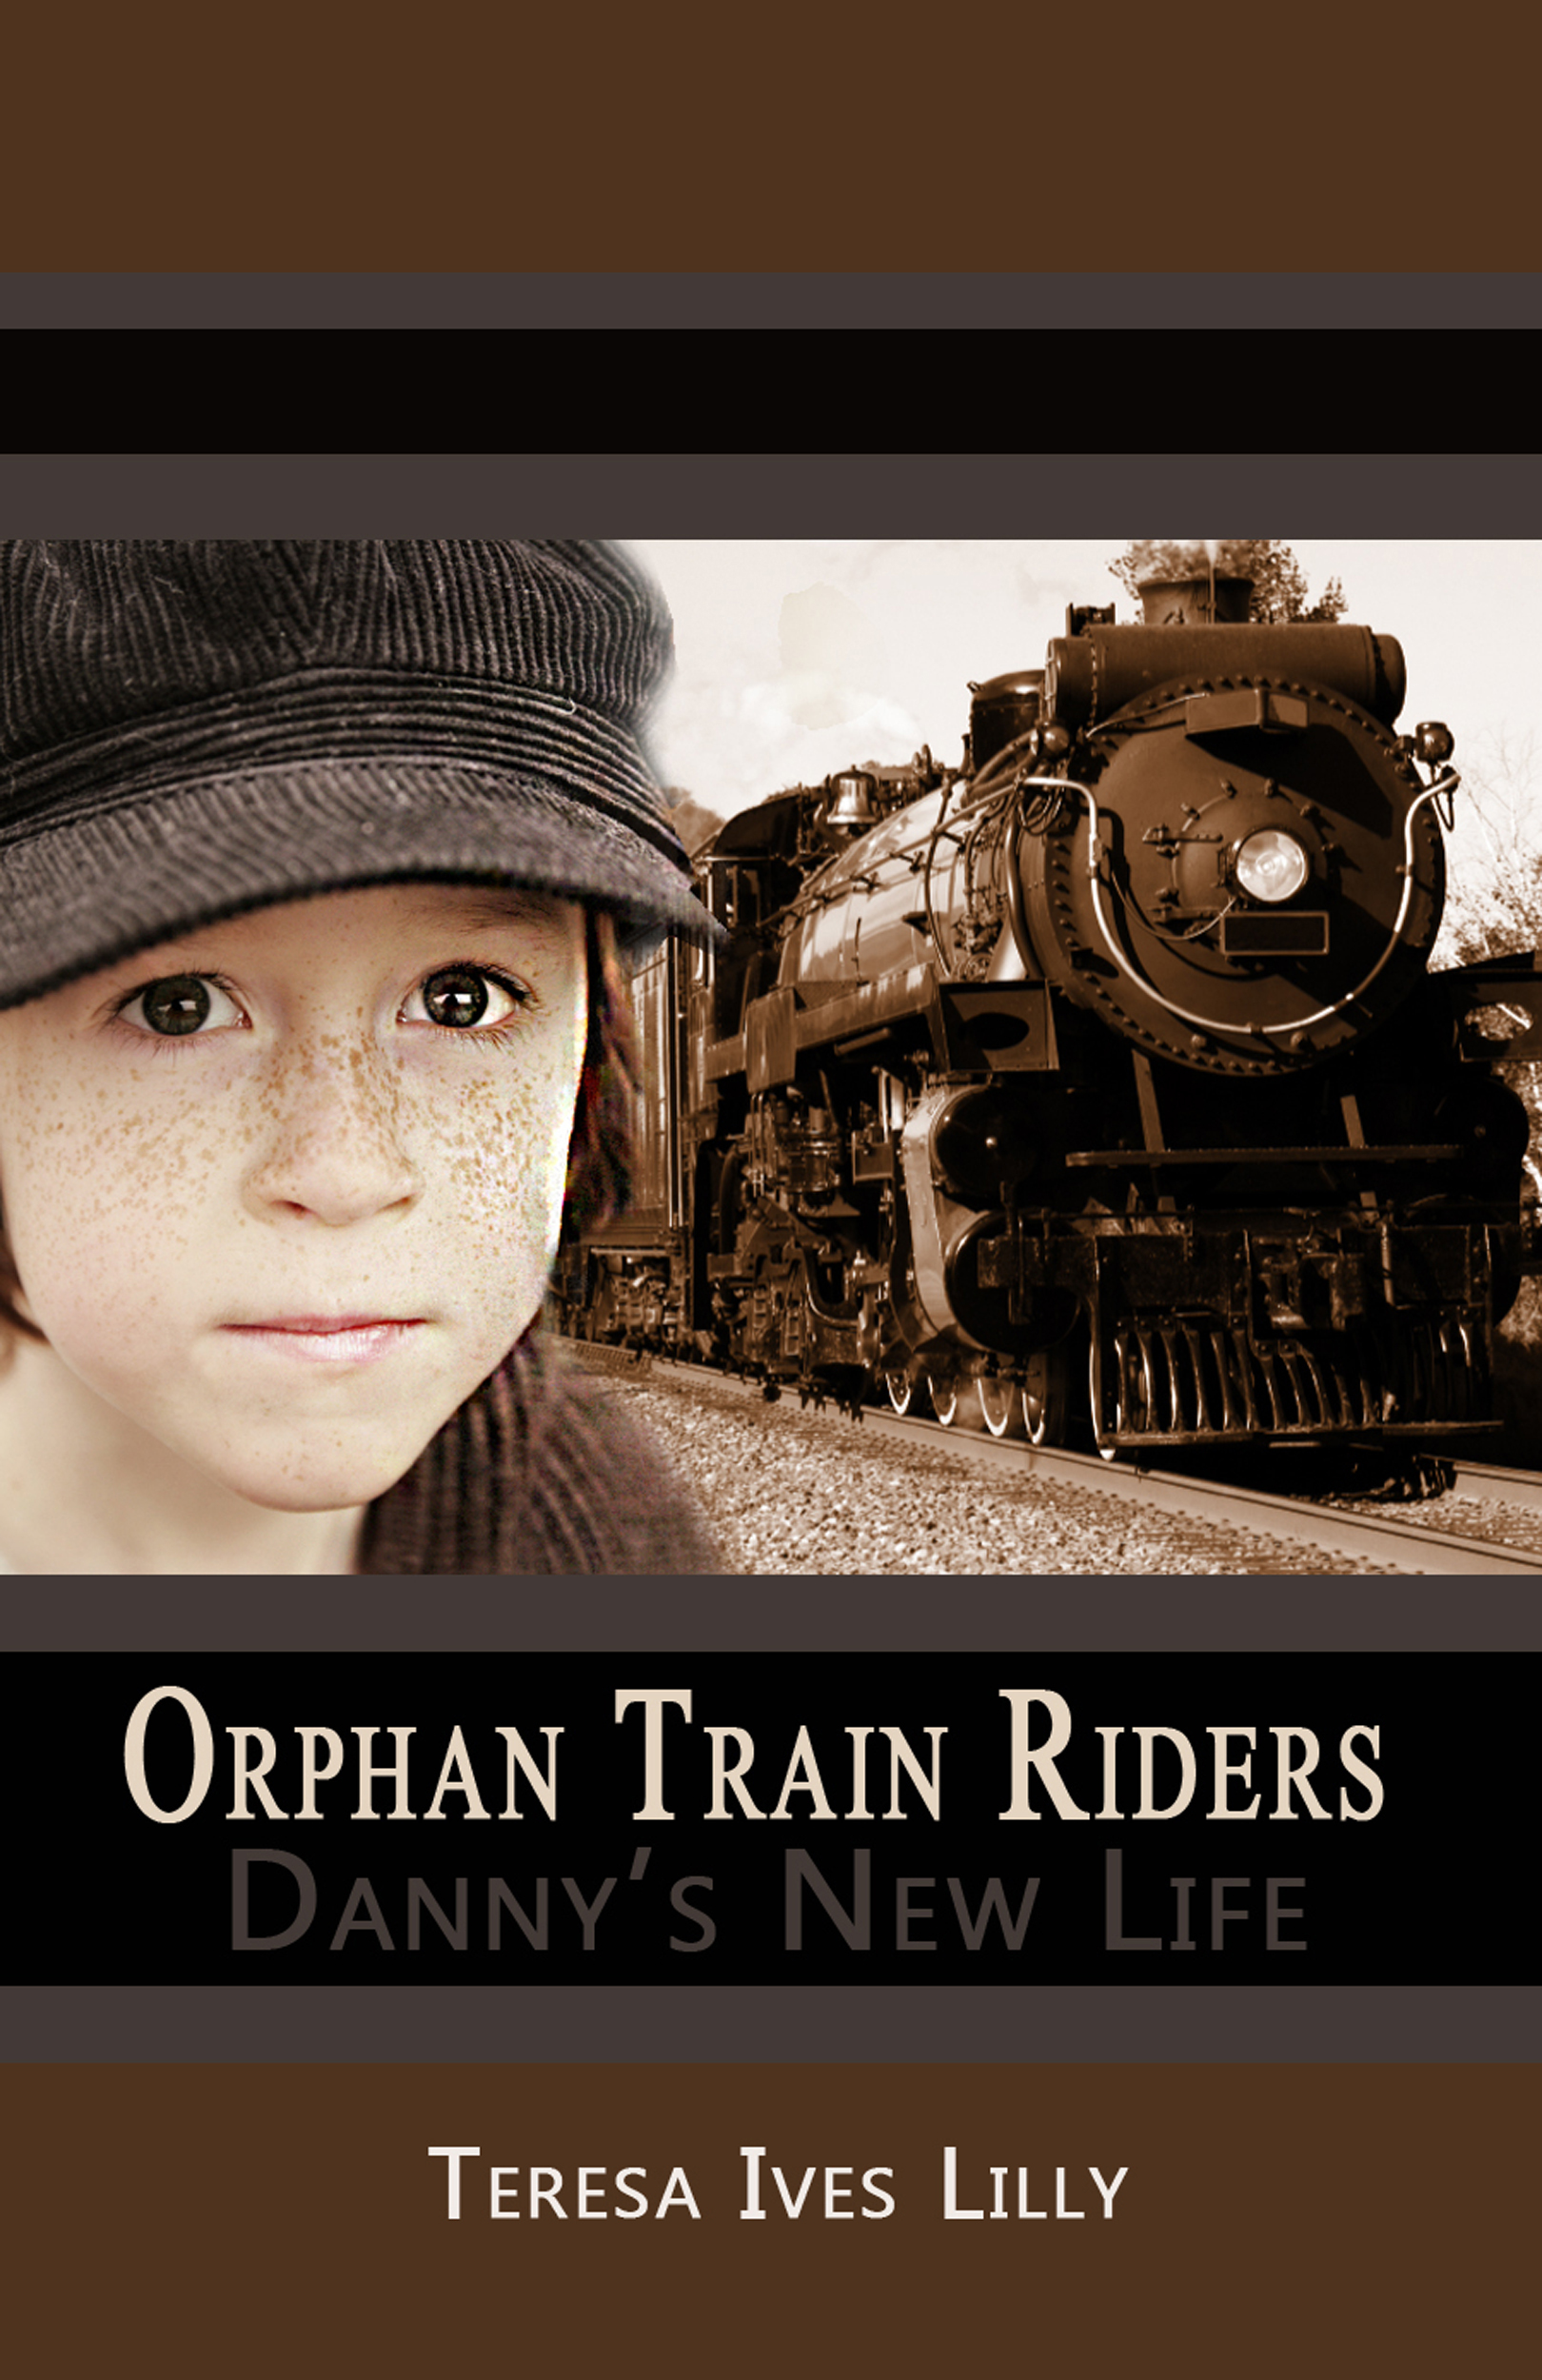 Orphan Train Riders Danny's New Life